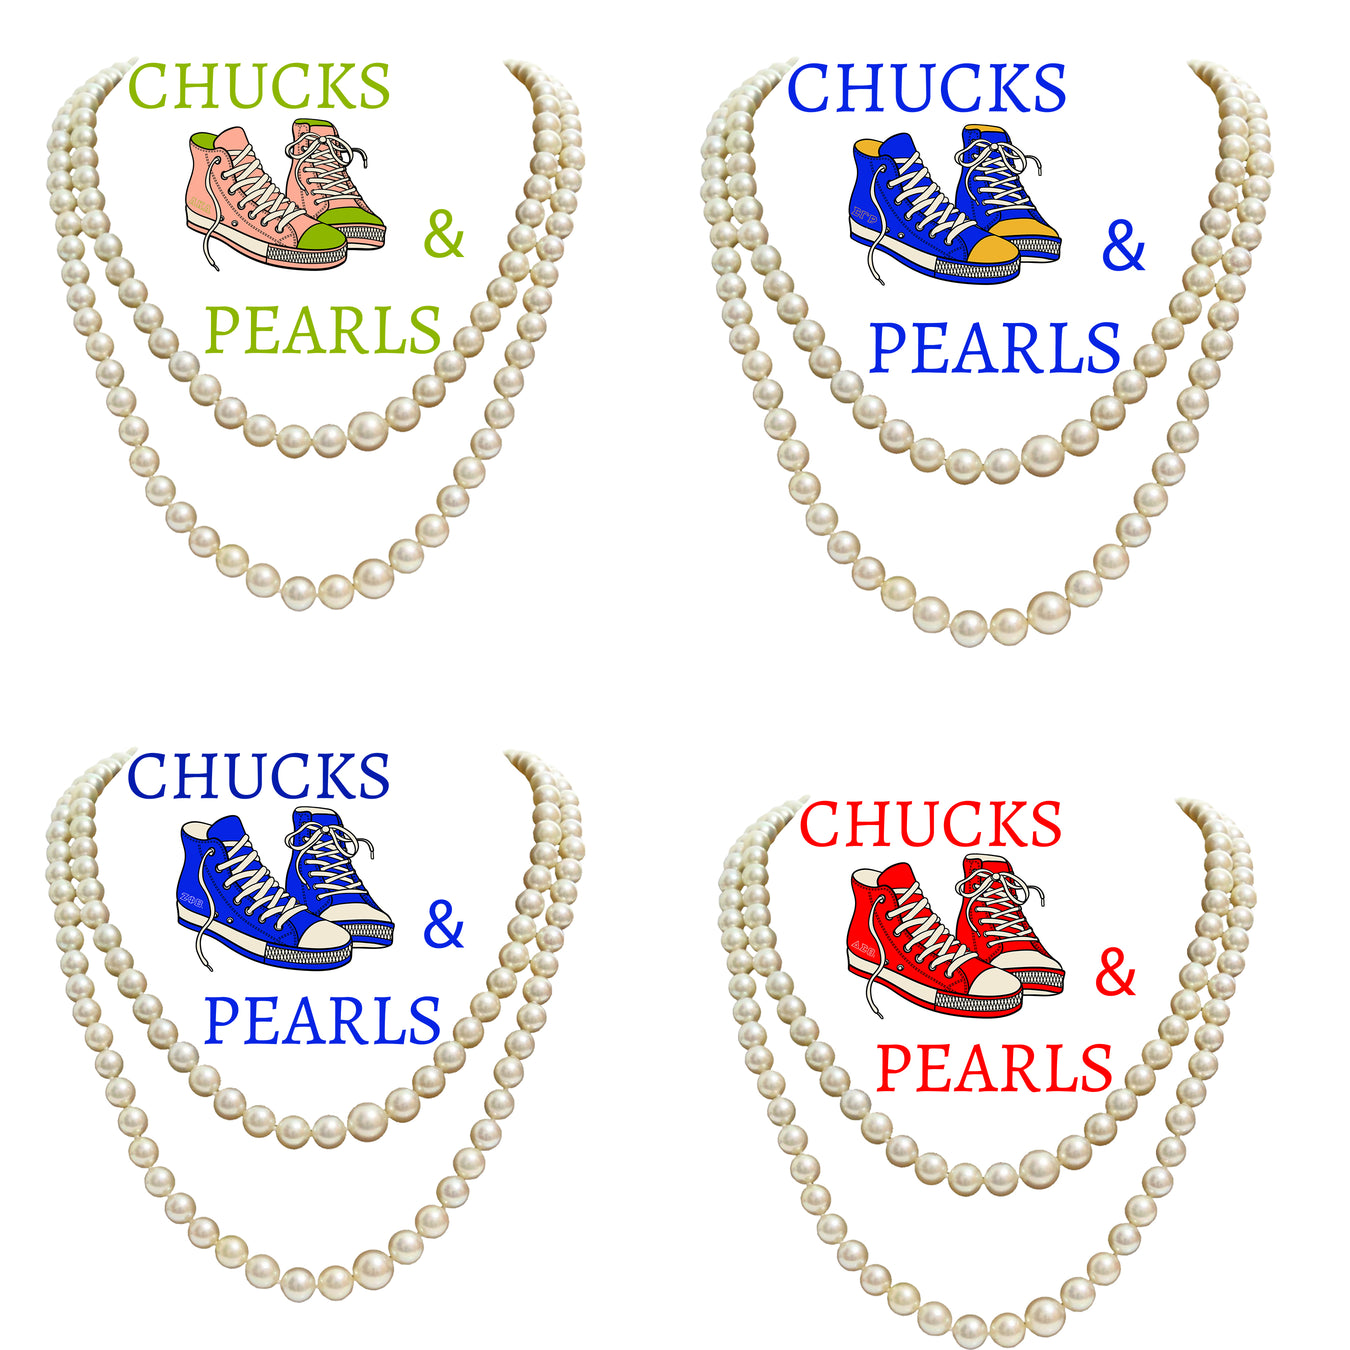 Chucks & Pearls T-shirts